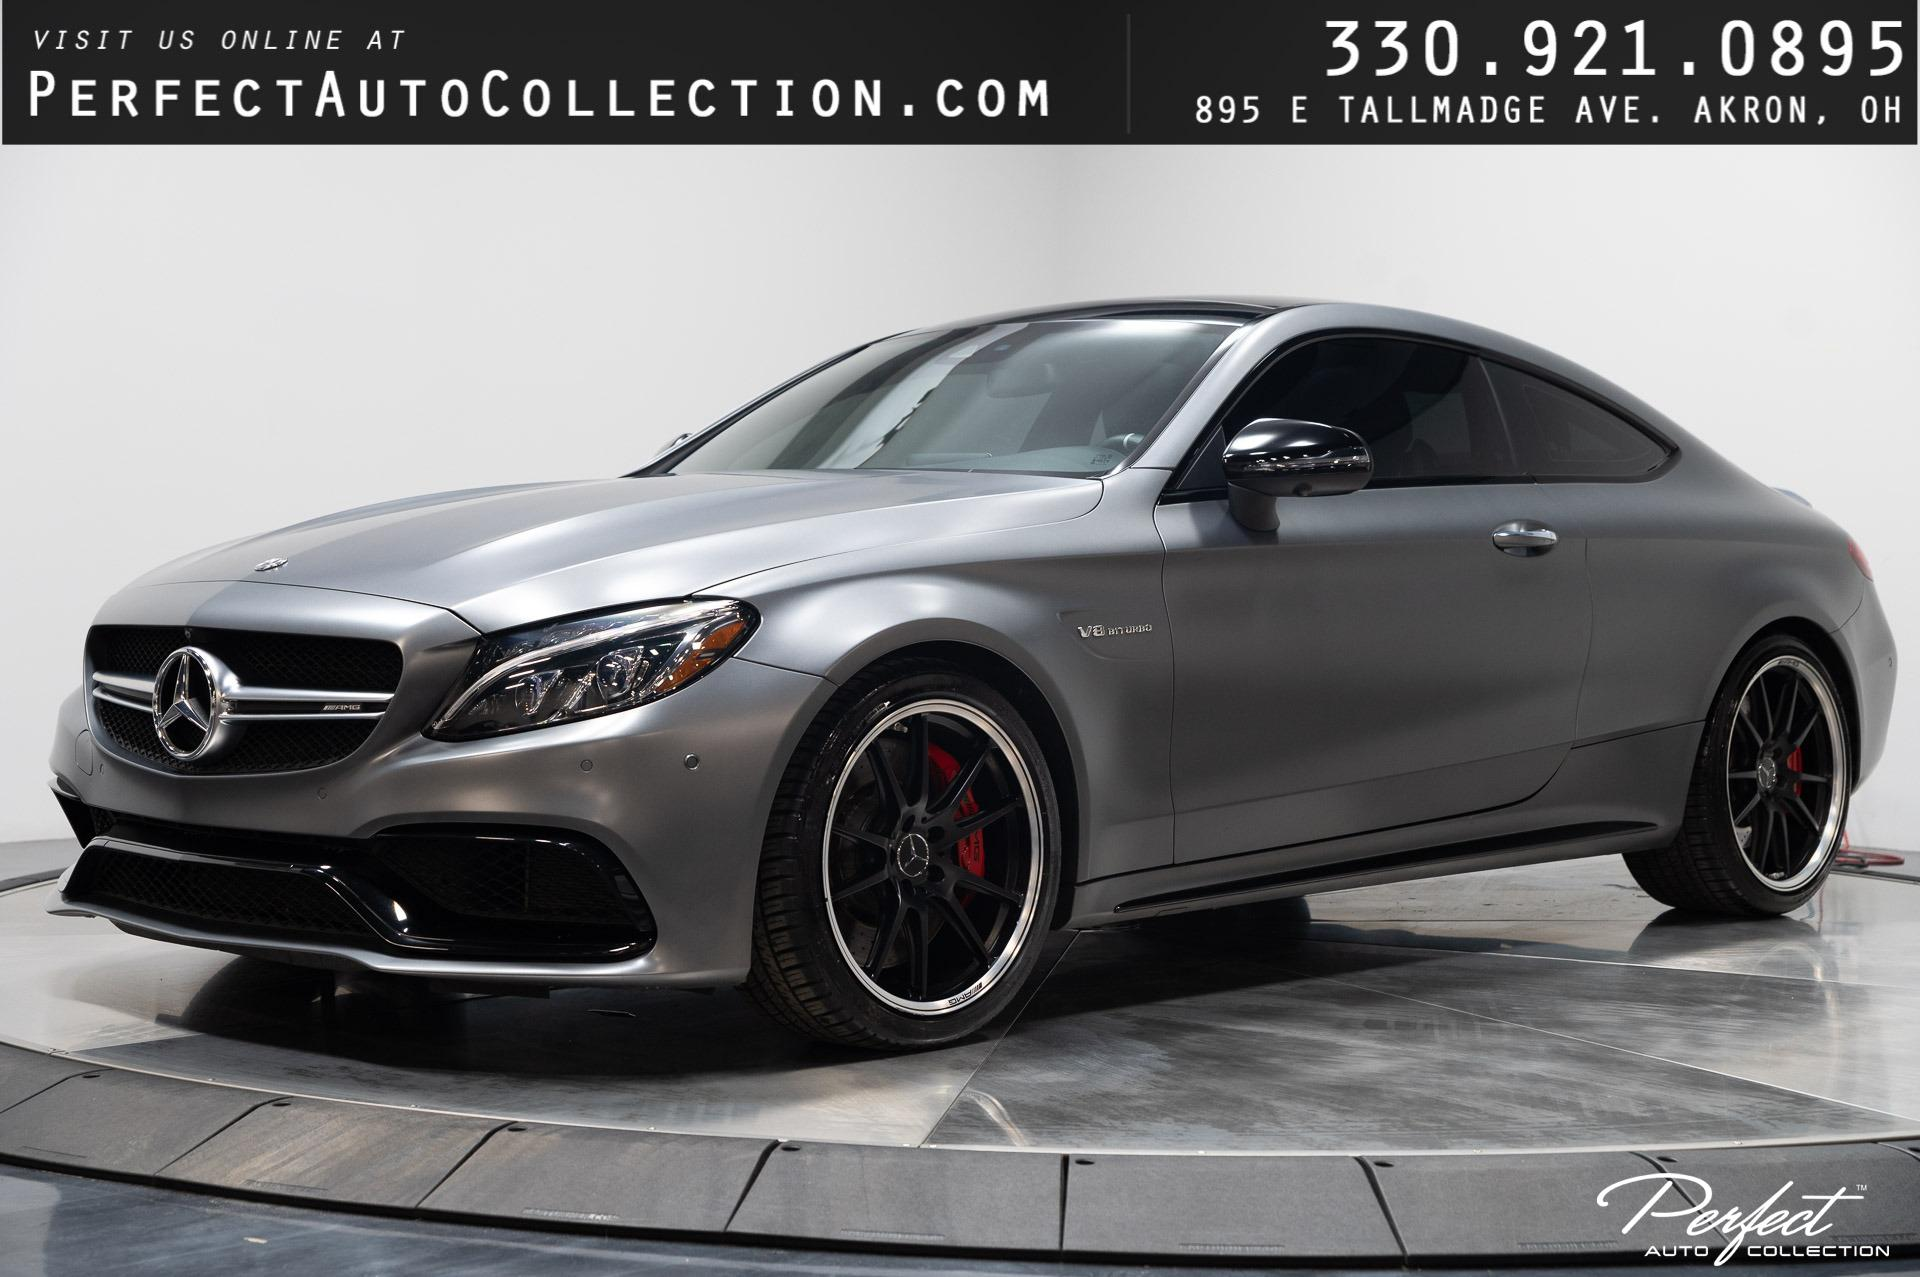 Used 2018 Mercedes-Benz C-Class AMG C 63 S for sale $63,995 at Perfect Auto Collection in Akron OH 44310 1